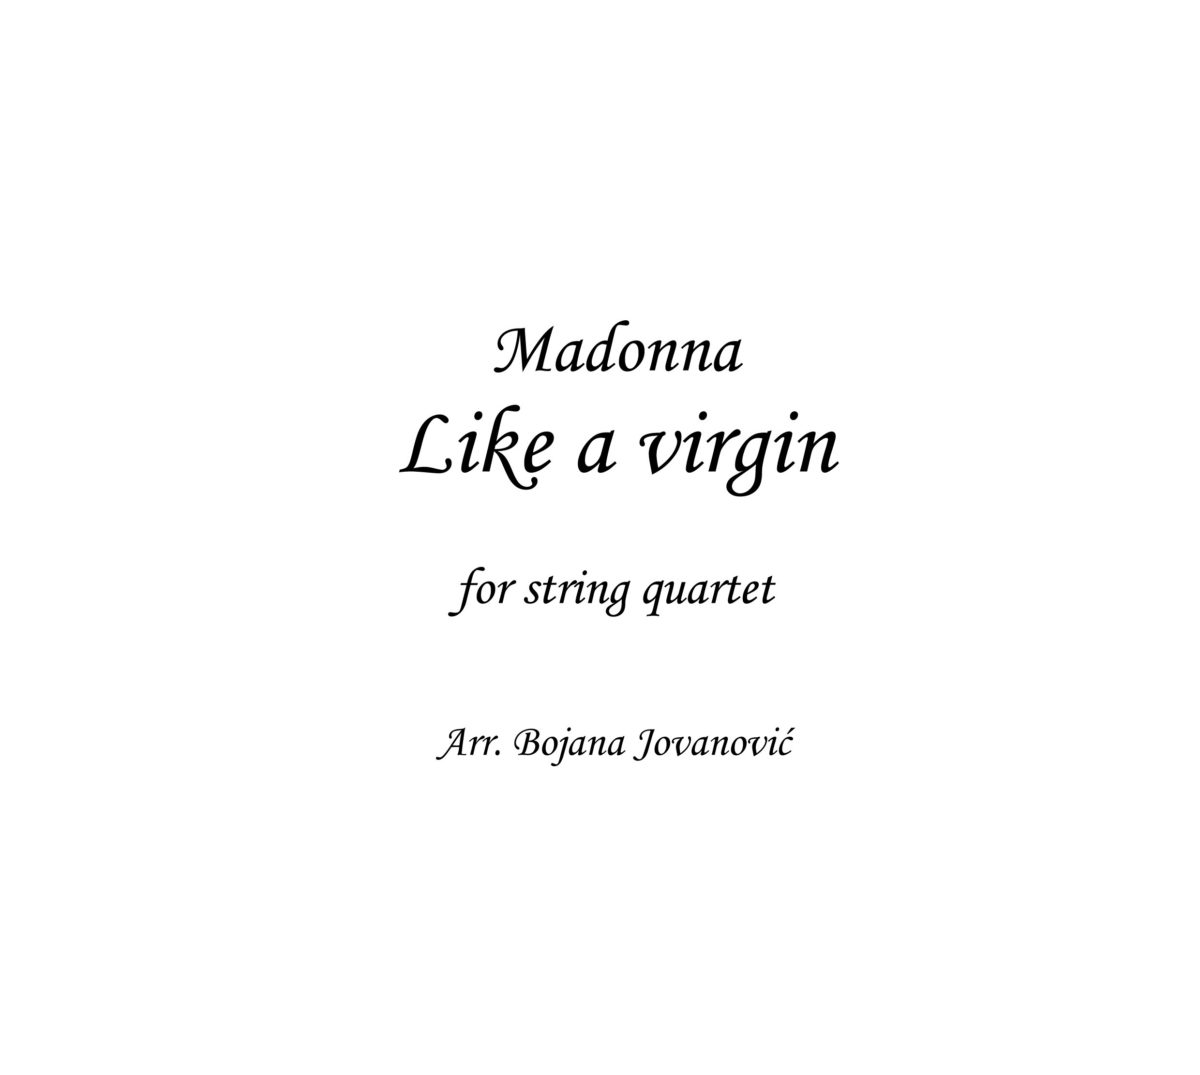 Like a virgin (Madonna) - Sheet Music